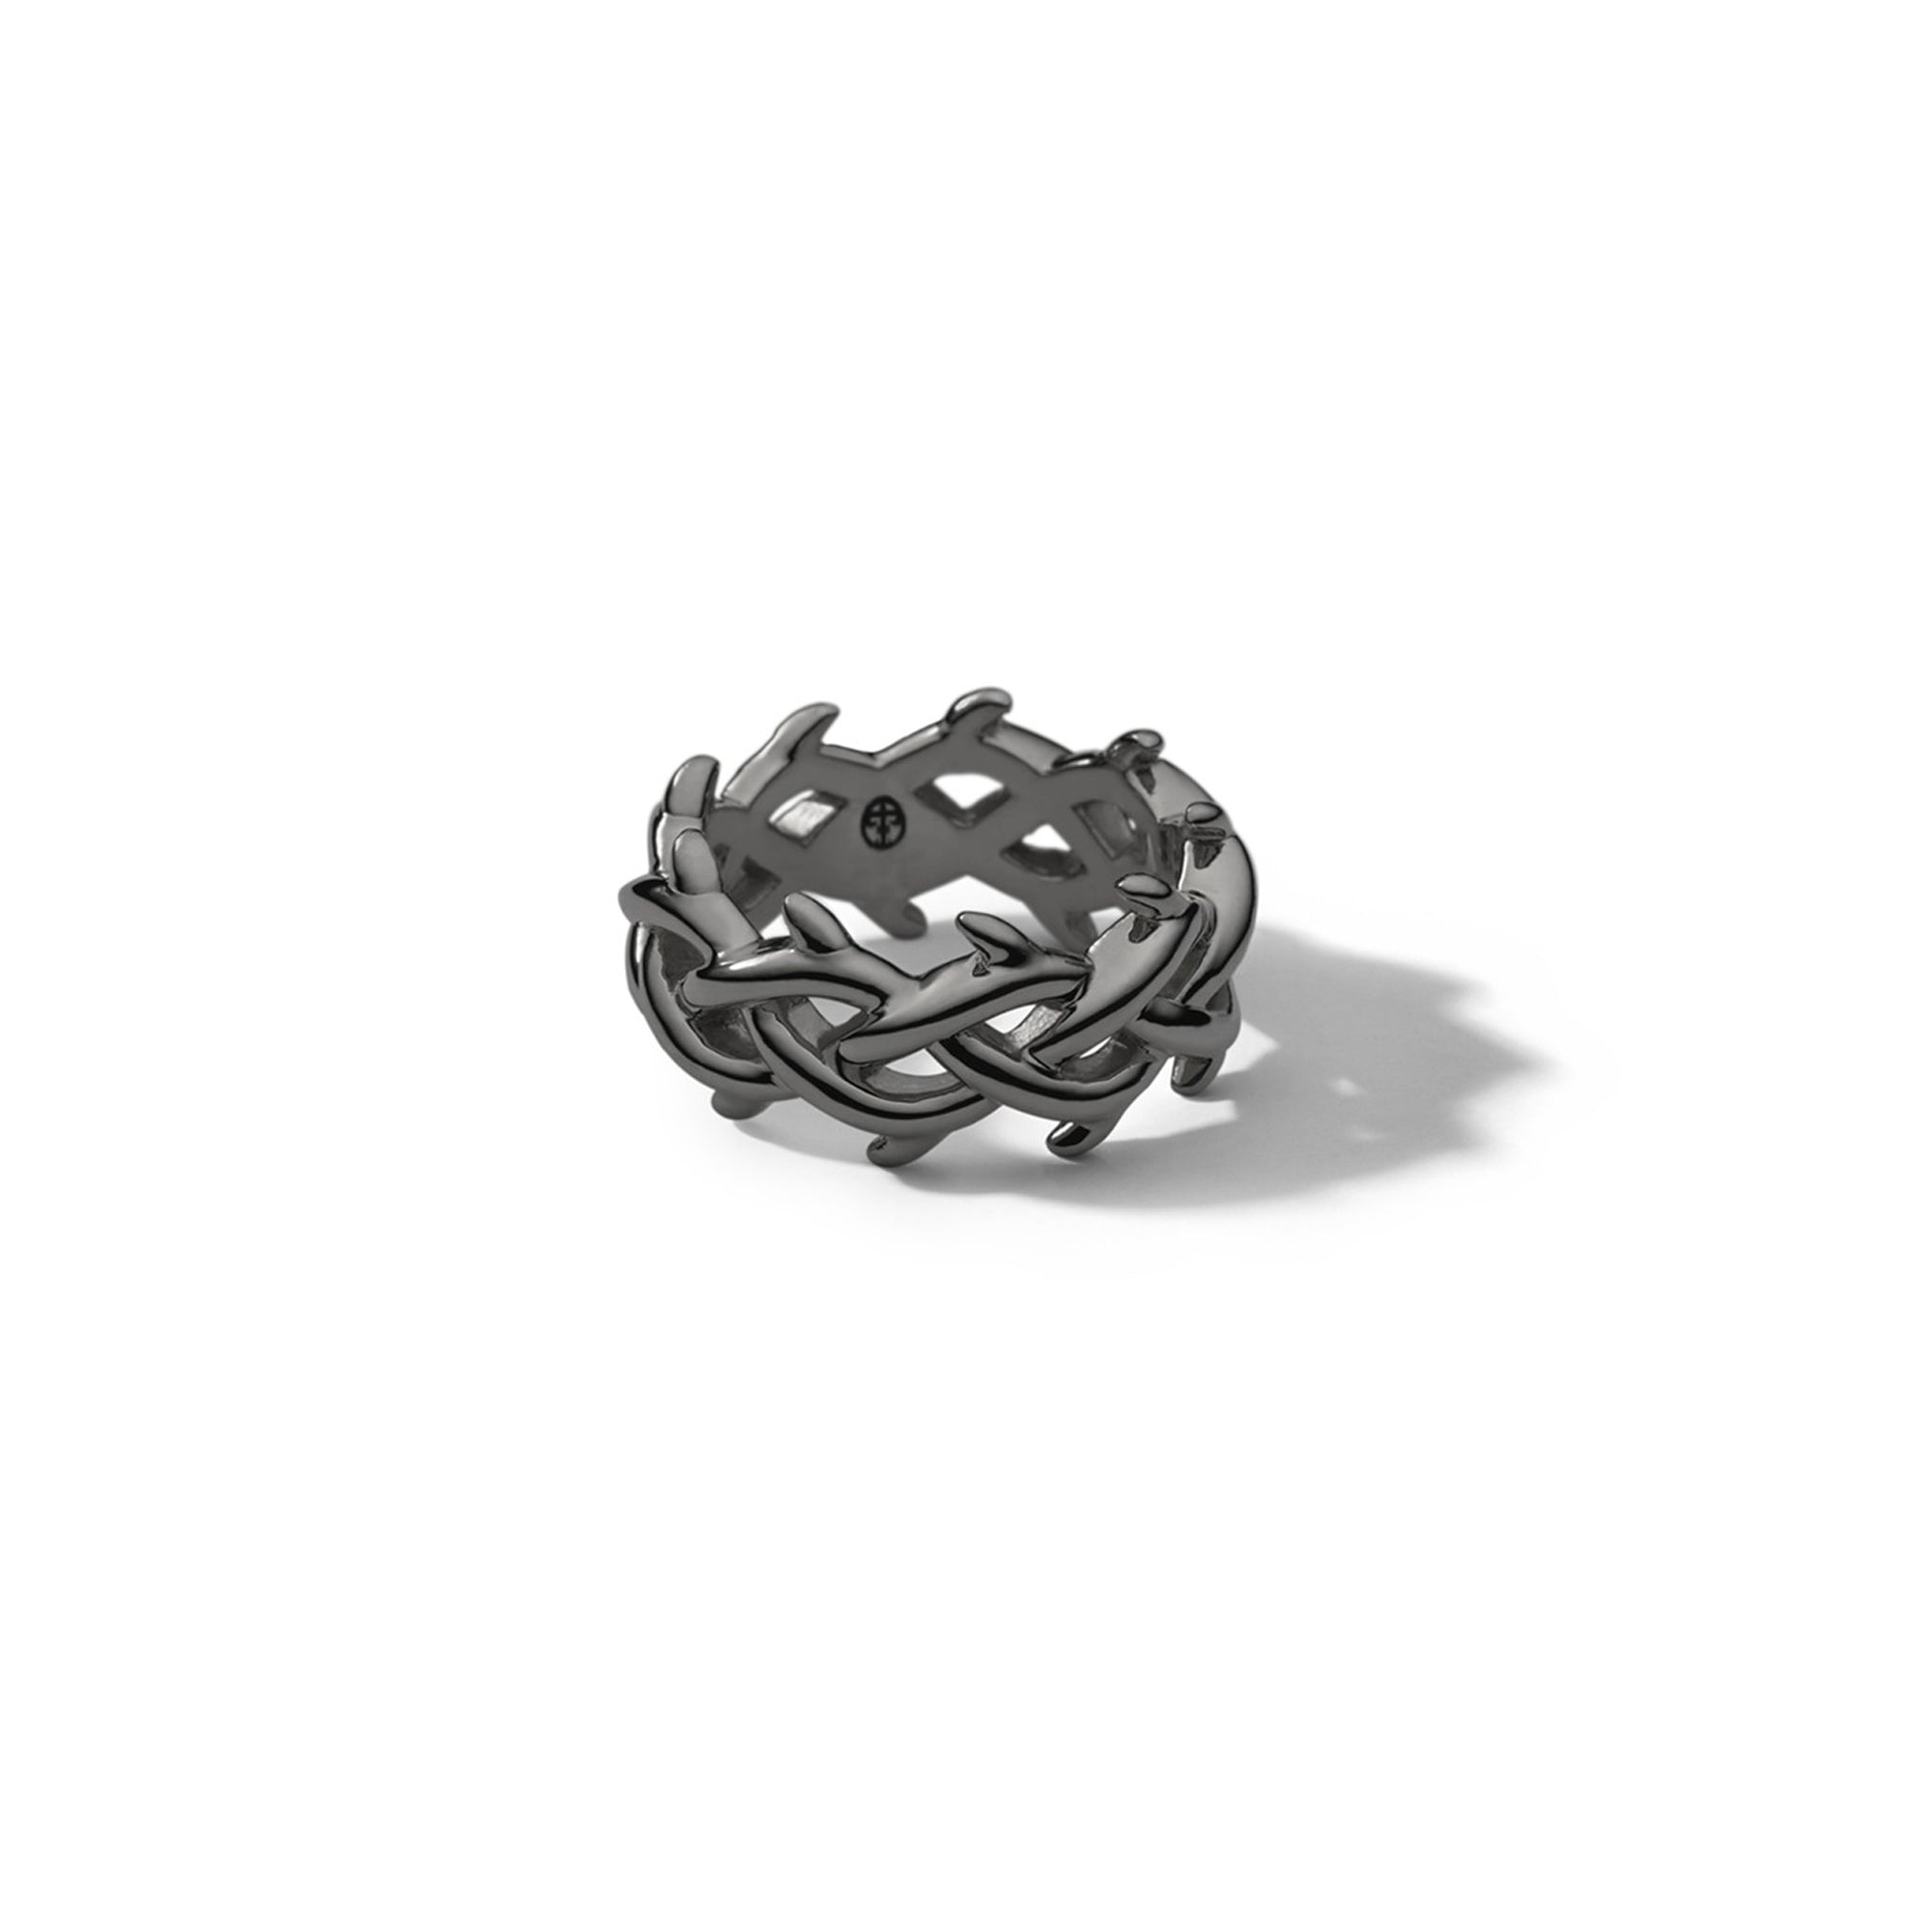 LAPSTONE x THORN 7MM CROWN RING - BLACK RHODIUM